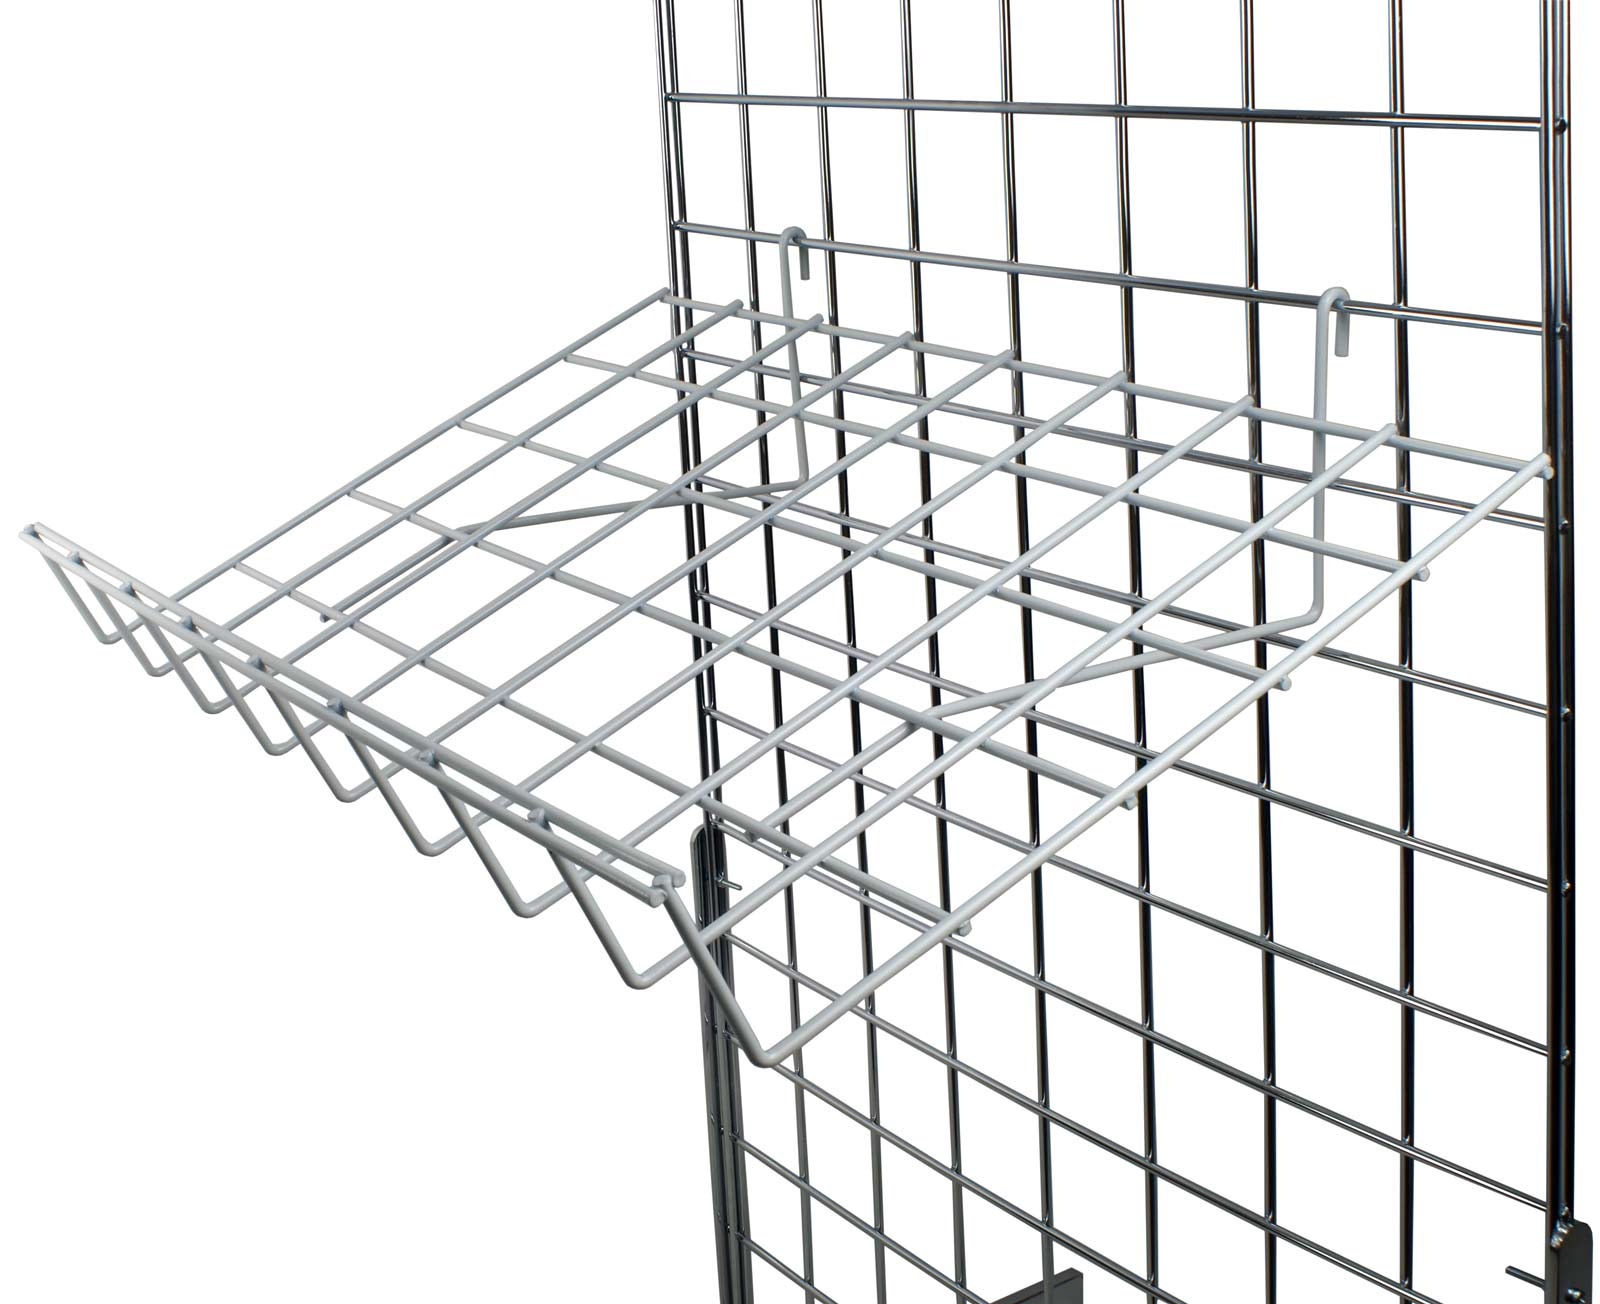 Grid Baskets and Shelves